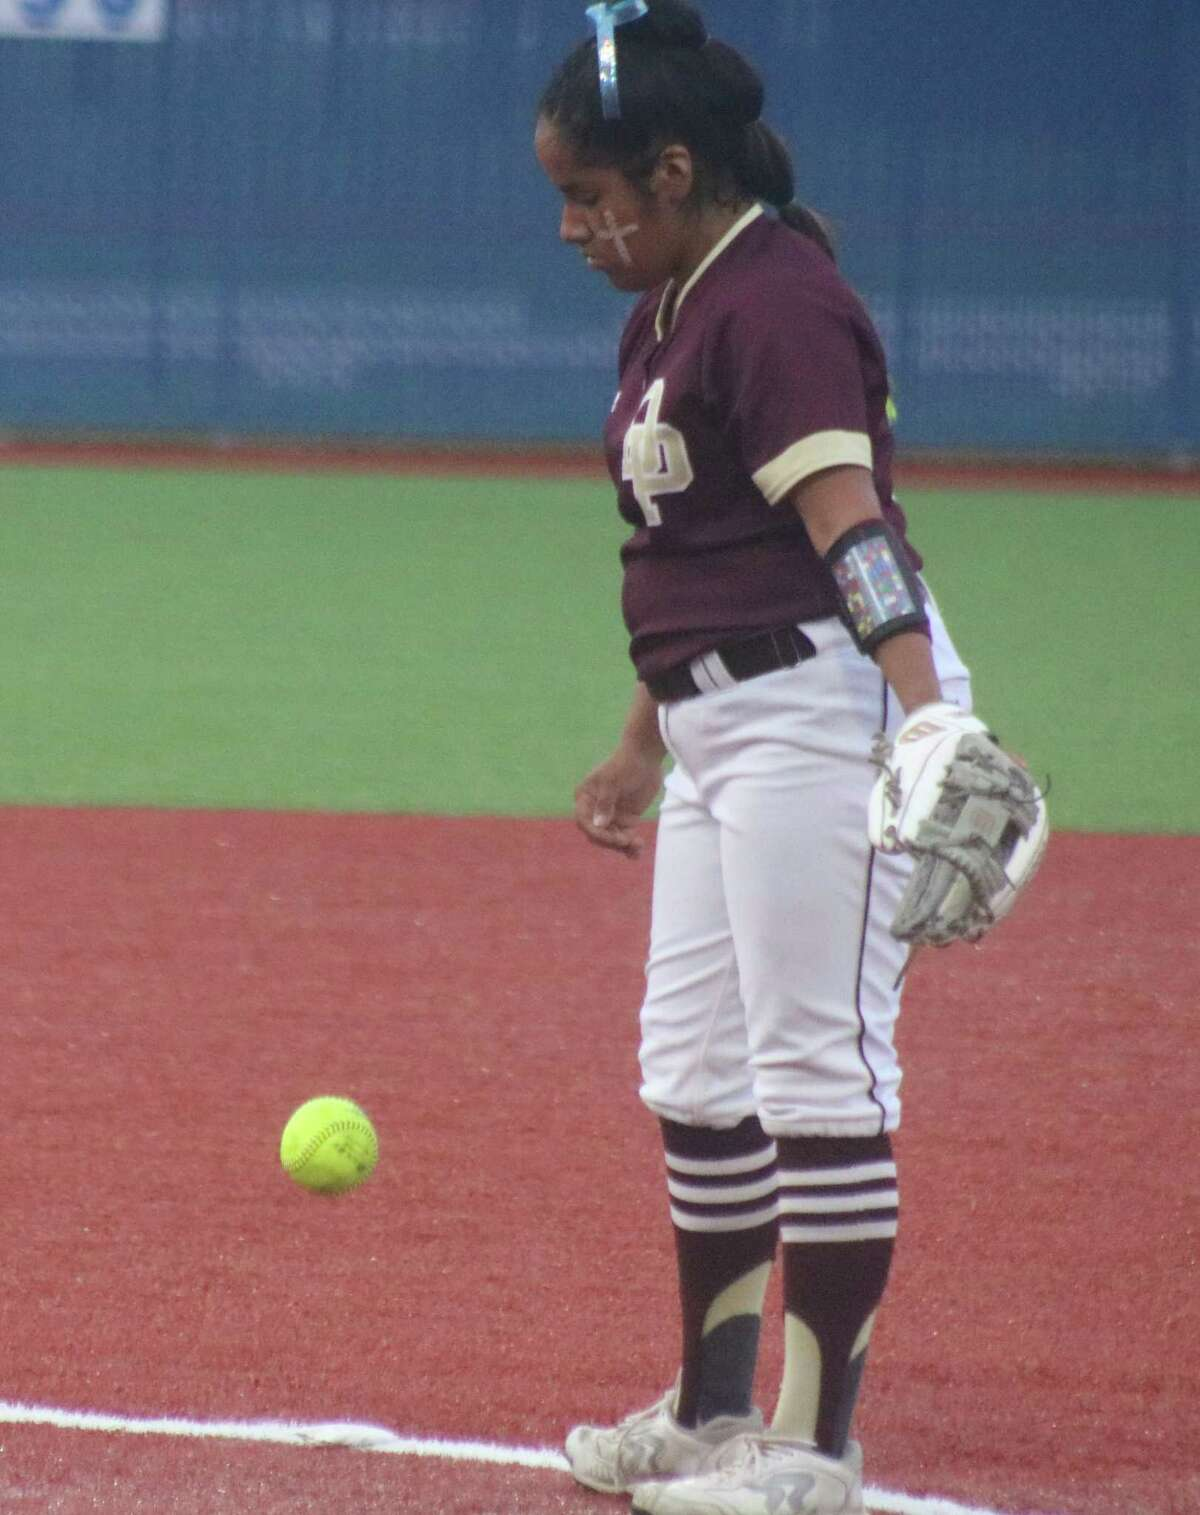 Hanna Benavides bounces a softball on the turf during her pitching assignment against Ridge Point. Unbeaten in the playoffs, she'll try and do her part to get the team past Clear Springs this weekend.